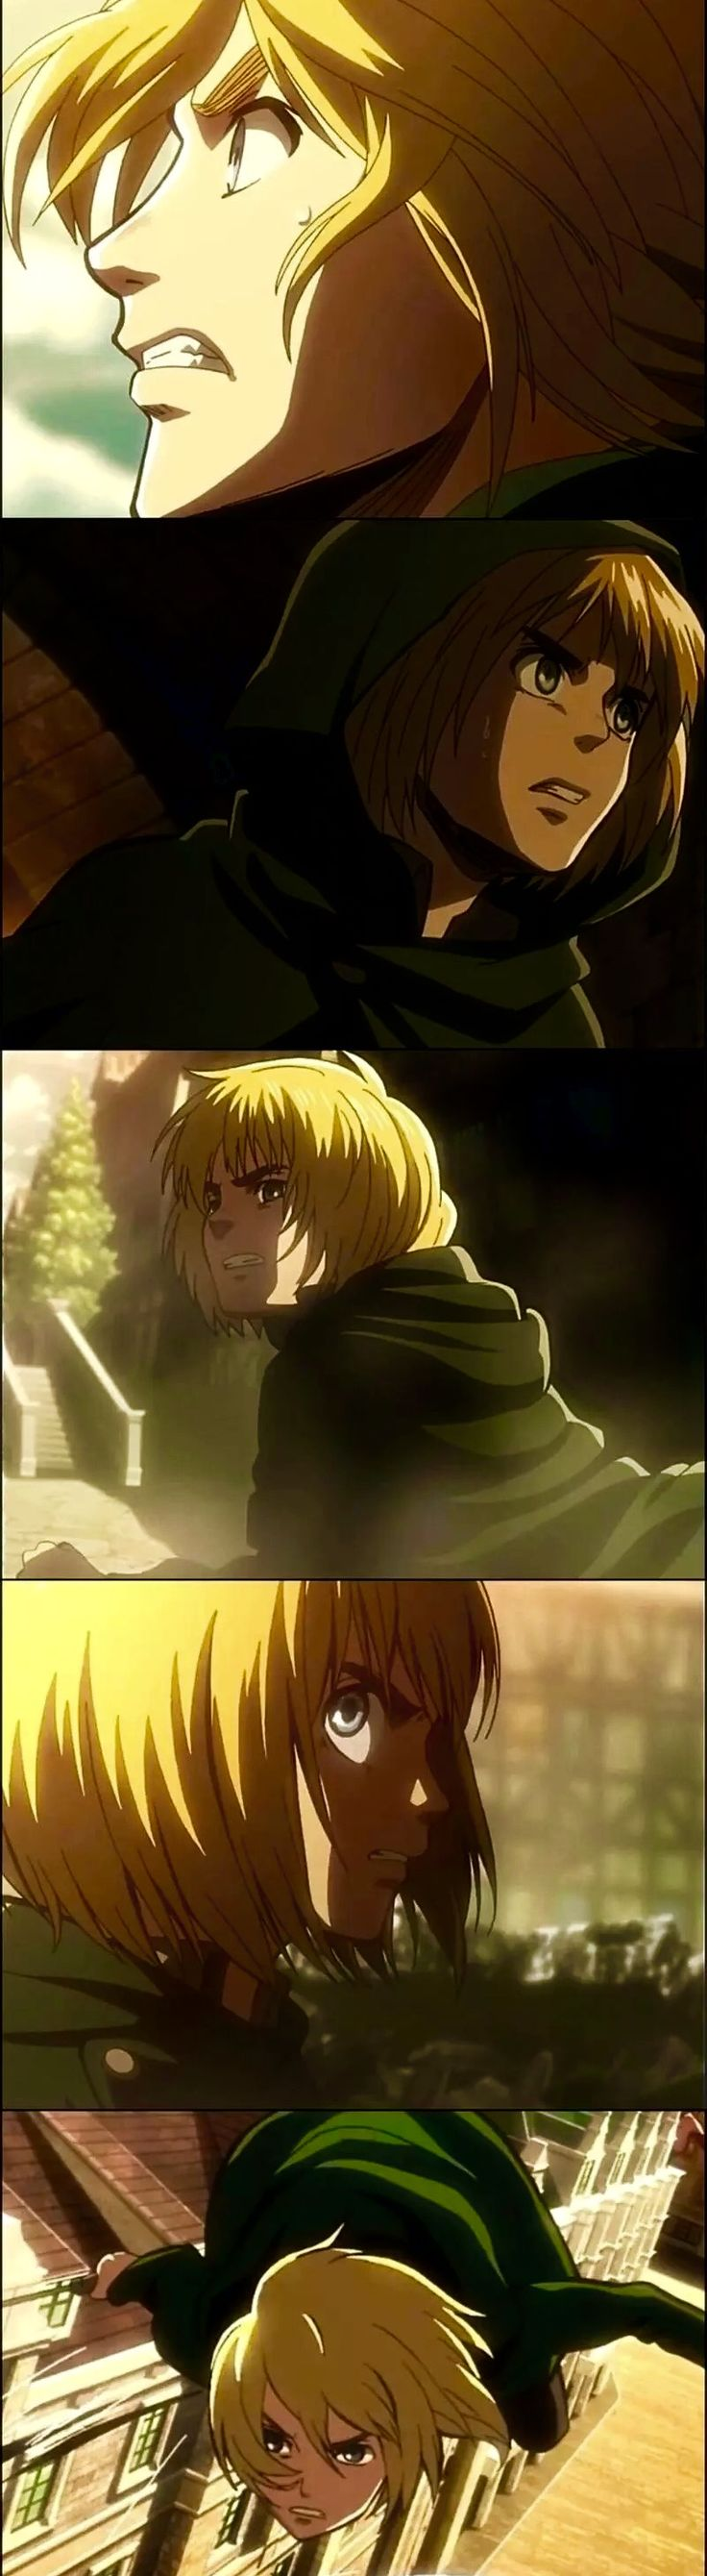 Armin Arlert looking super attractive at these angles